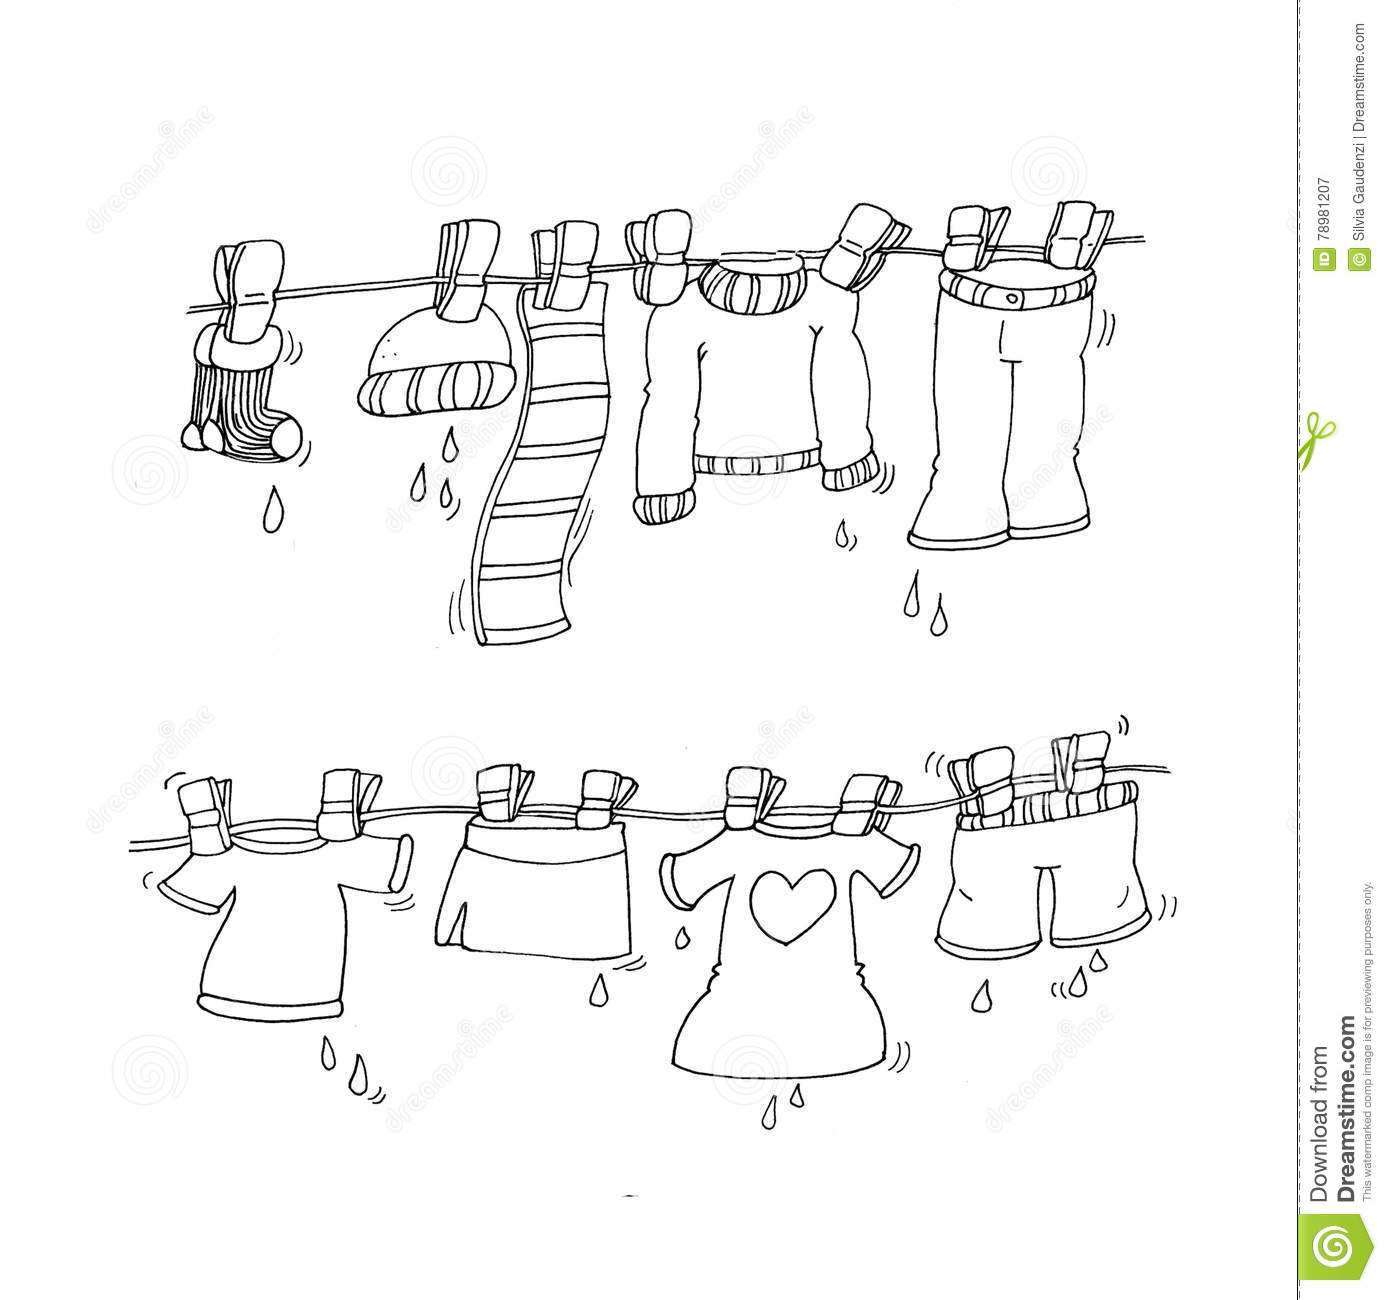 Clothes Hanging Clothes Hanging With Clothespins Chine